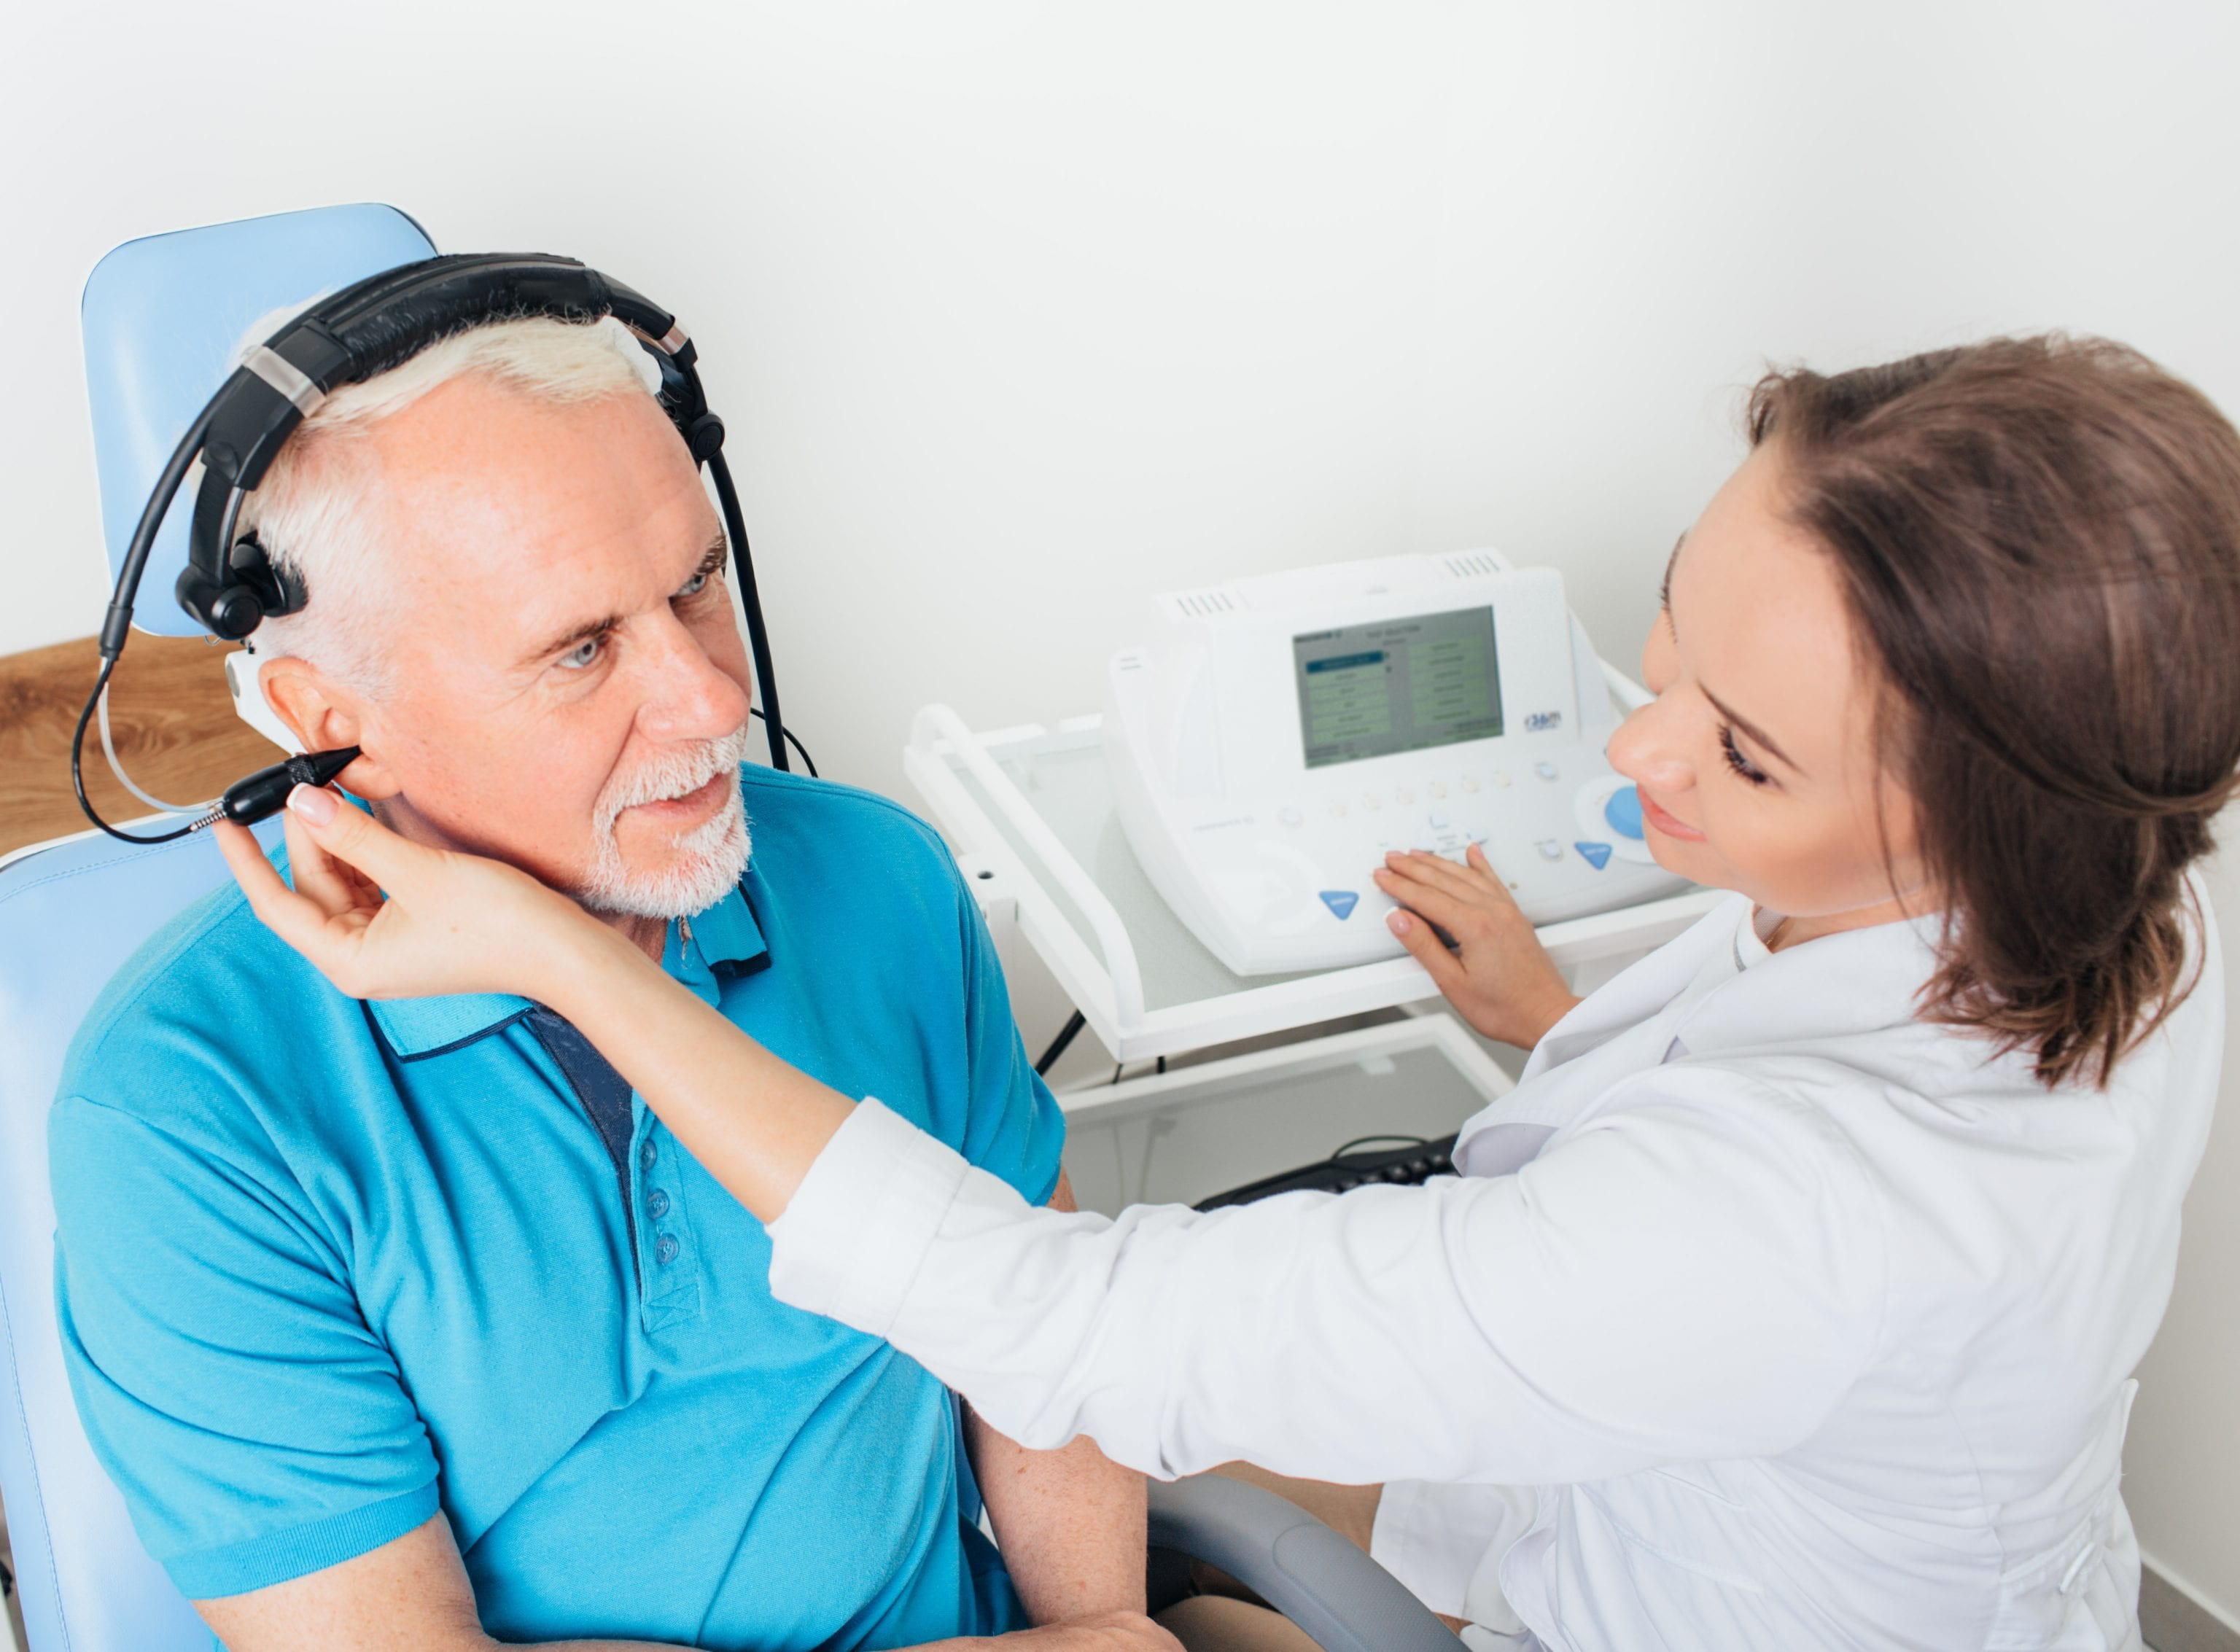 man wearing blue polo shirt sitting in hearing specialist office for examination